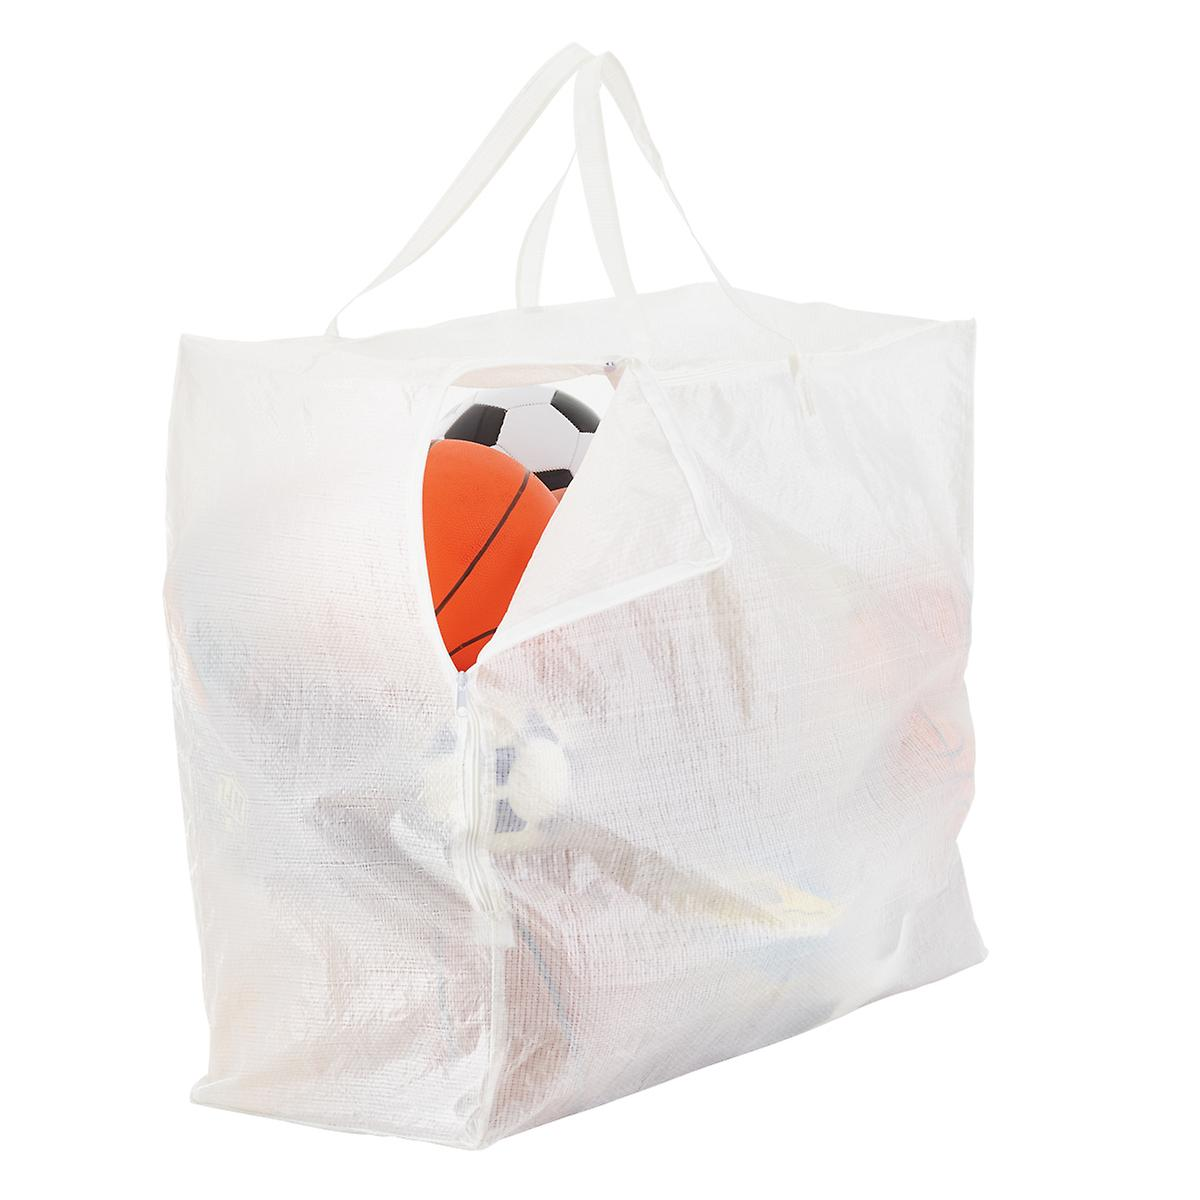 Shipping Container Bag Shop: All-Purpose Storage Bag